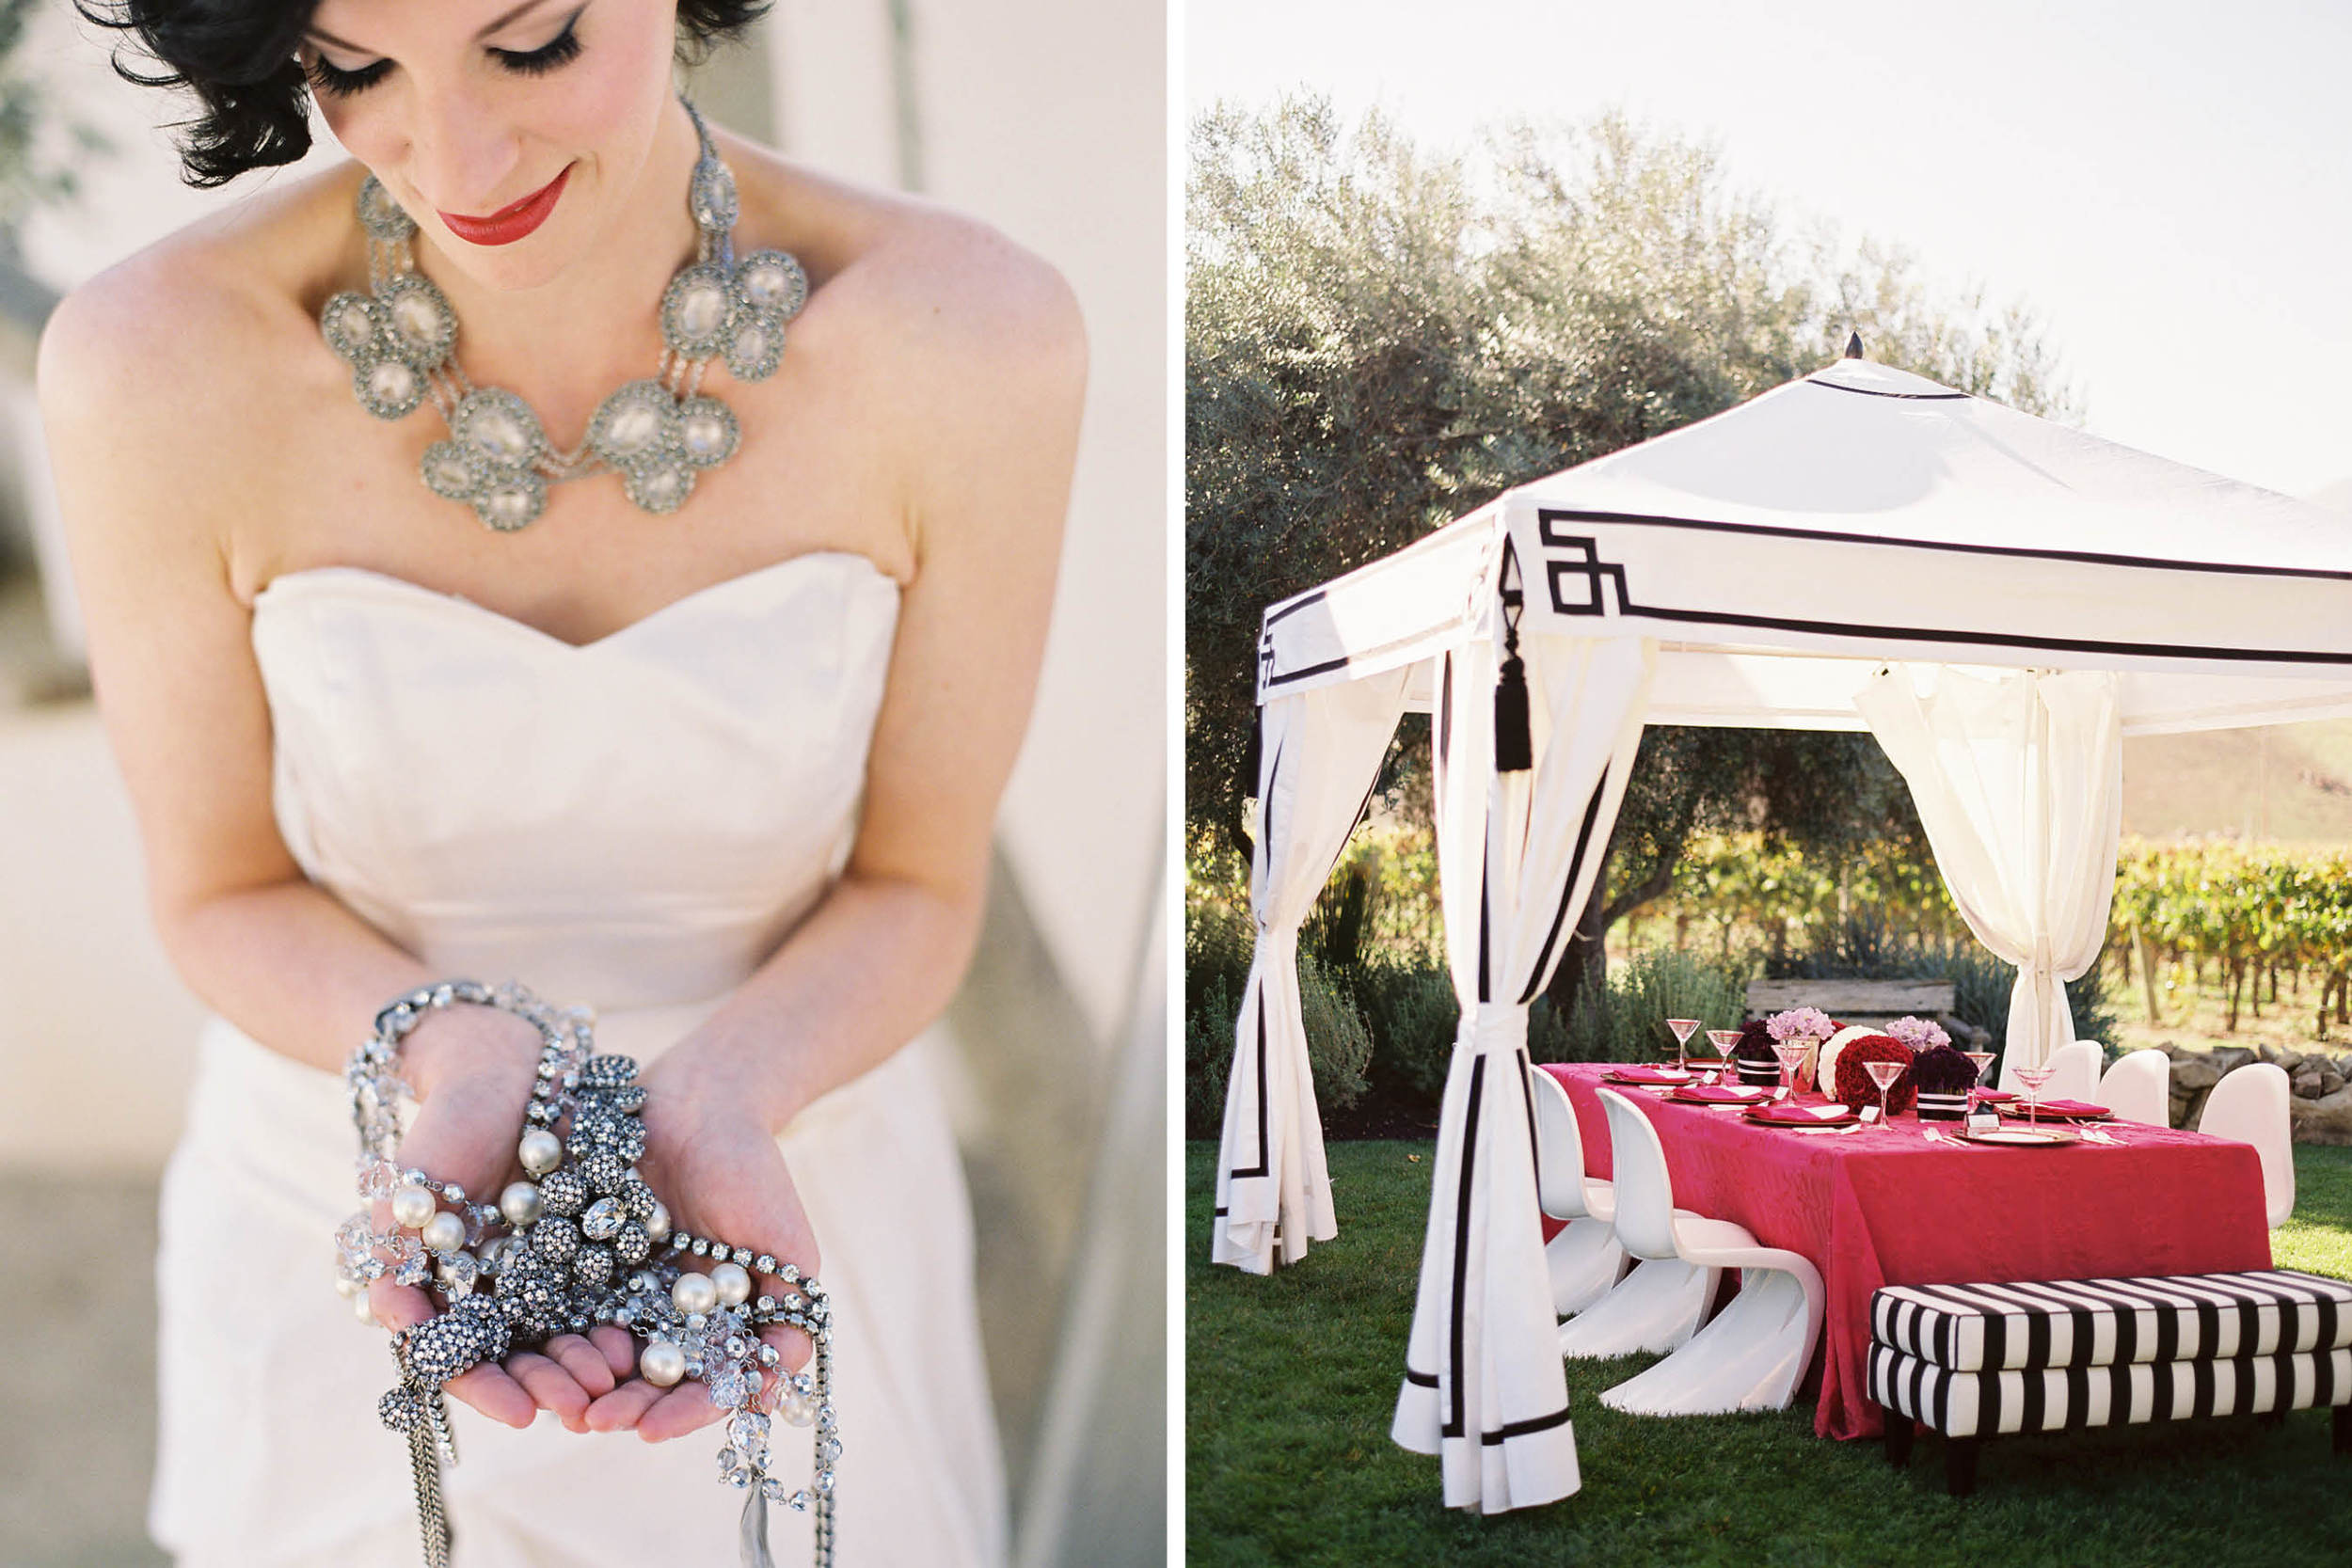 alegria-by-design-wedding-planner-coordination-santa-barbara-lafond-winery (1).jpg